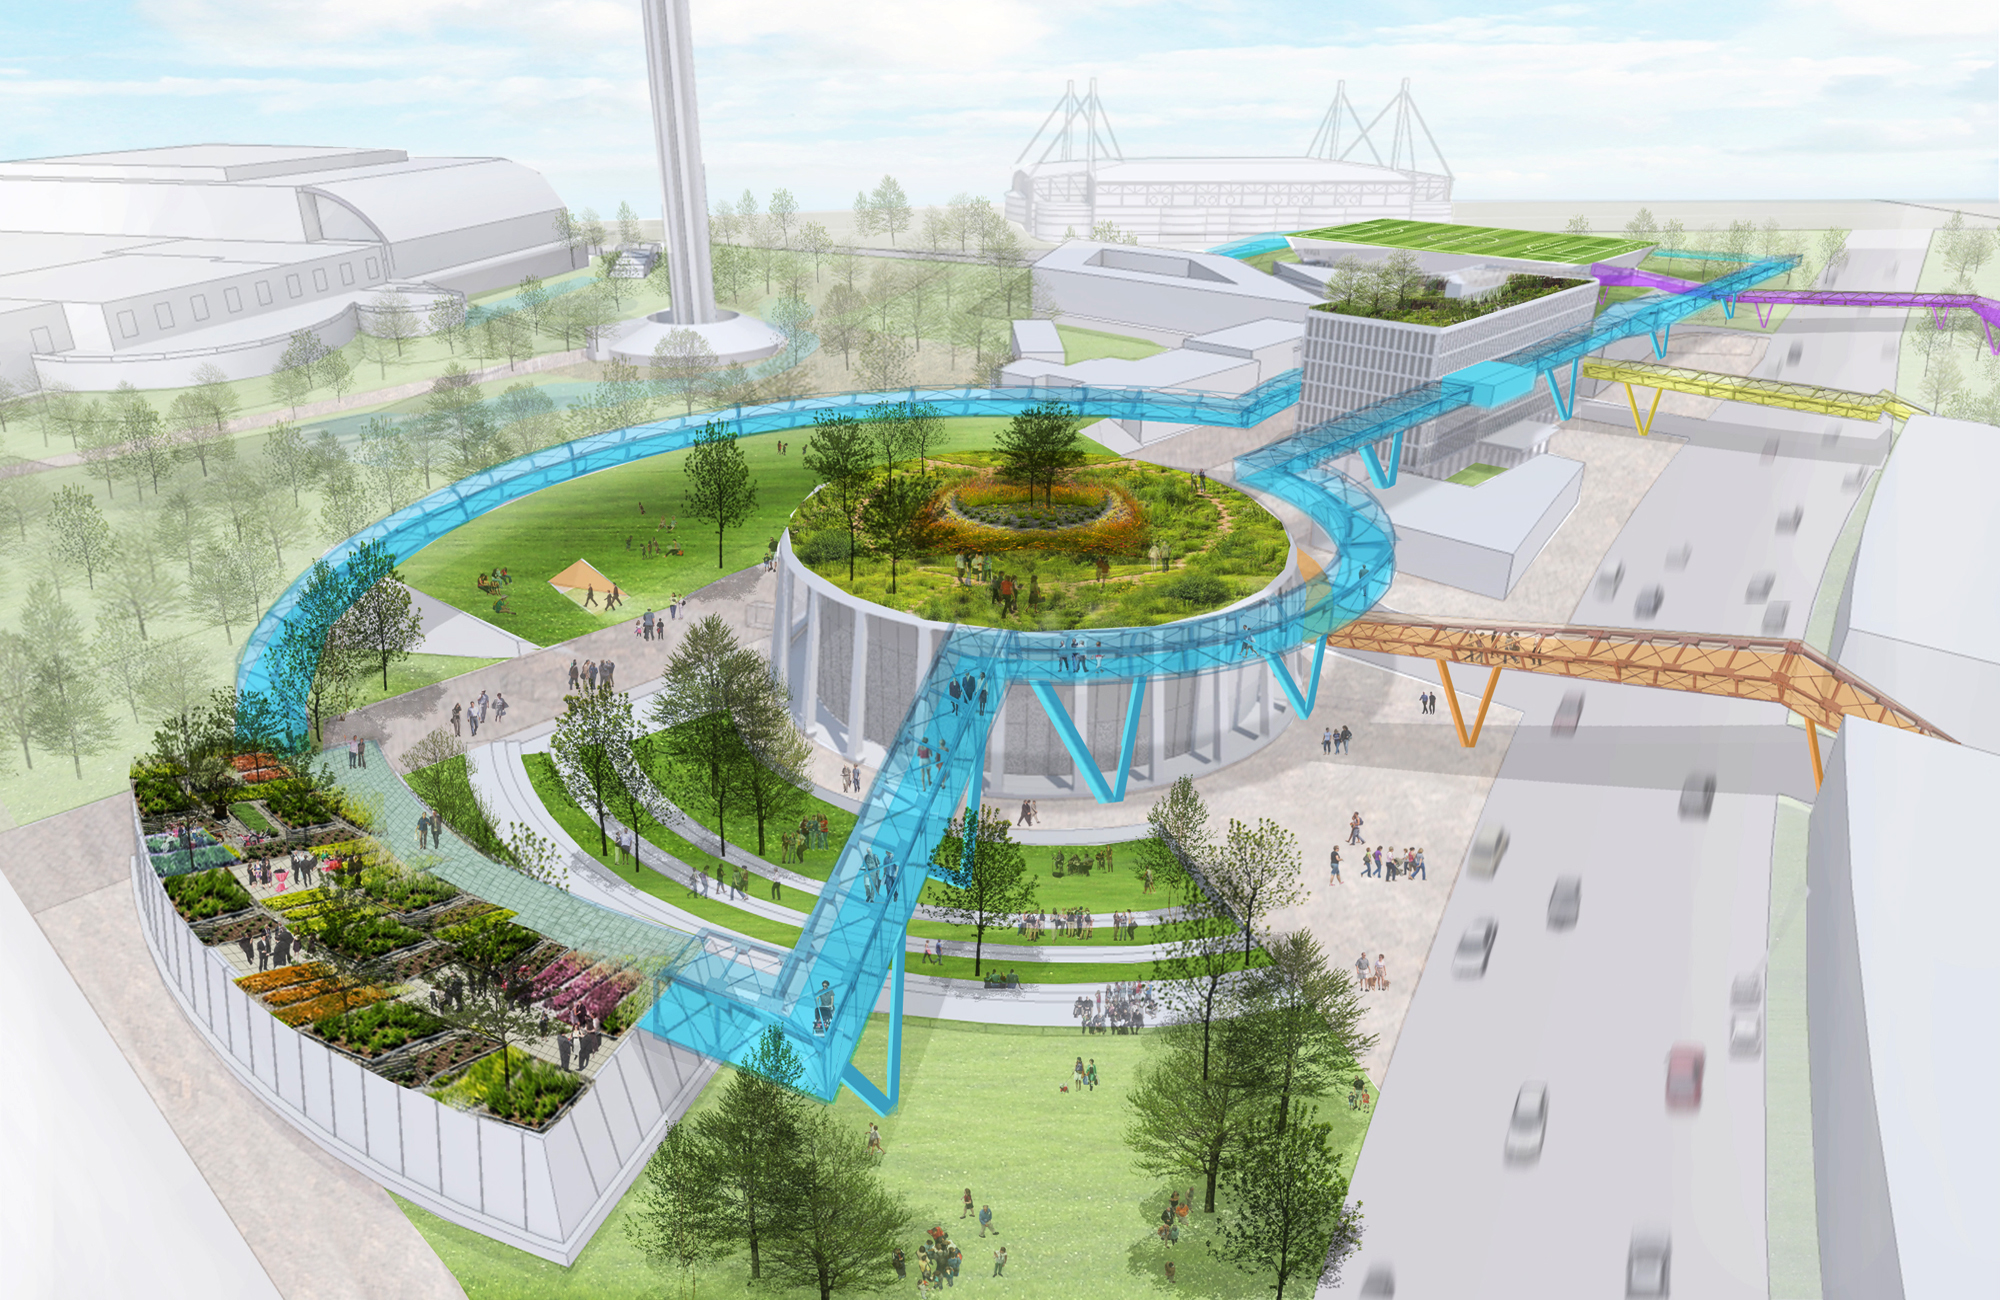 The design proposed the creation of an elevated promenade to provide an alternate experience of Hemisfair Park.